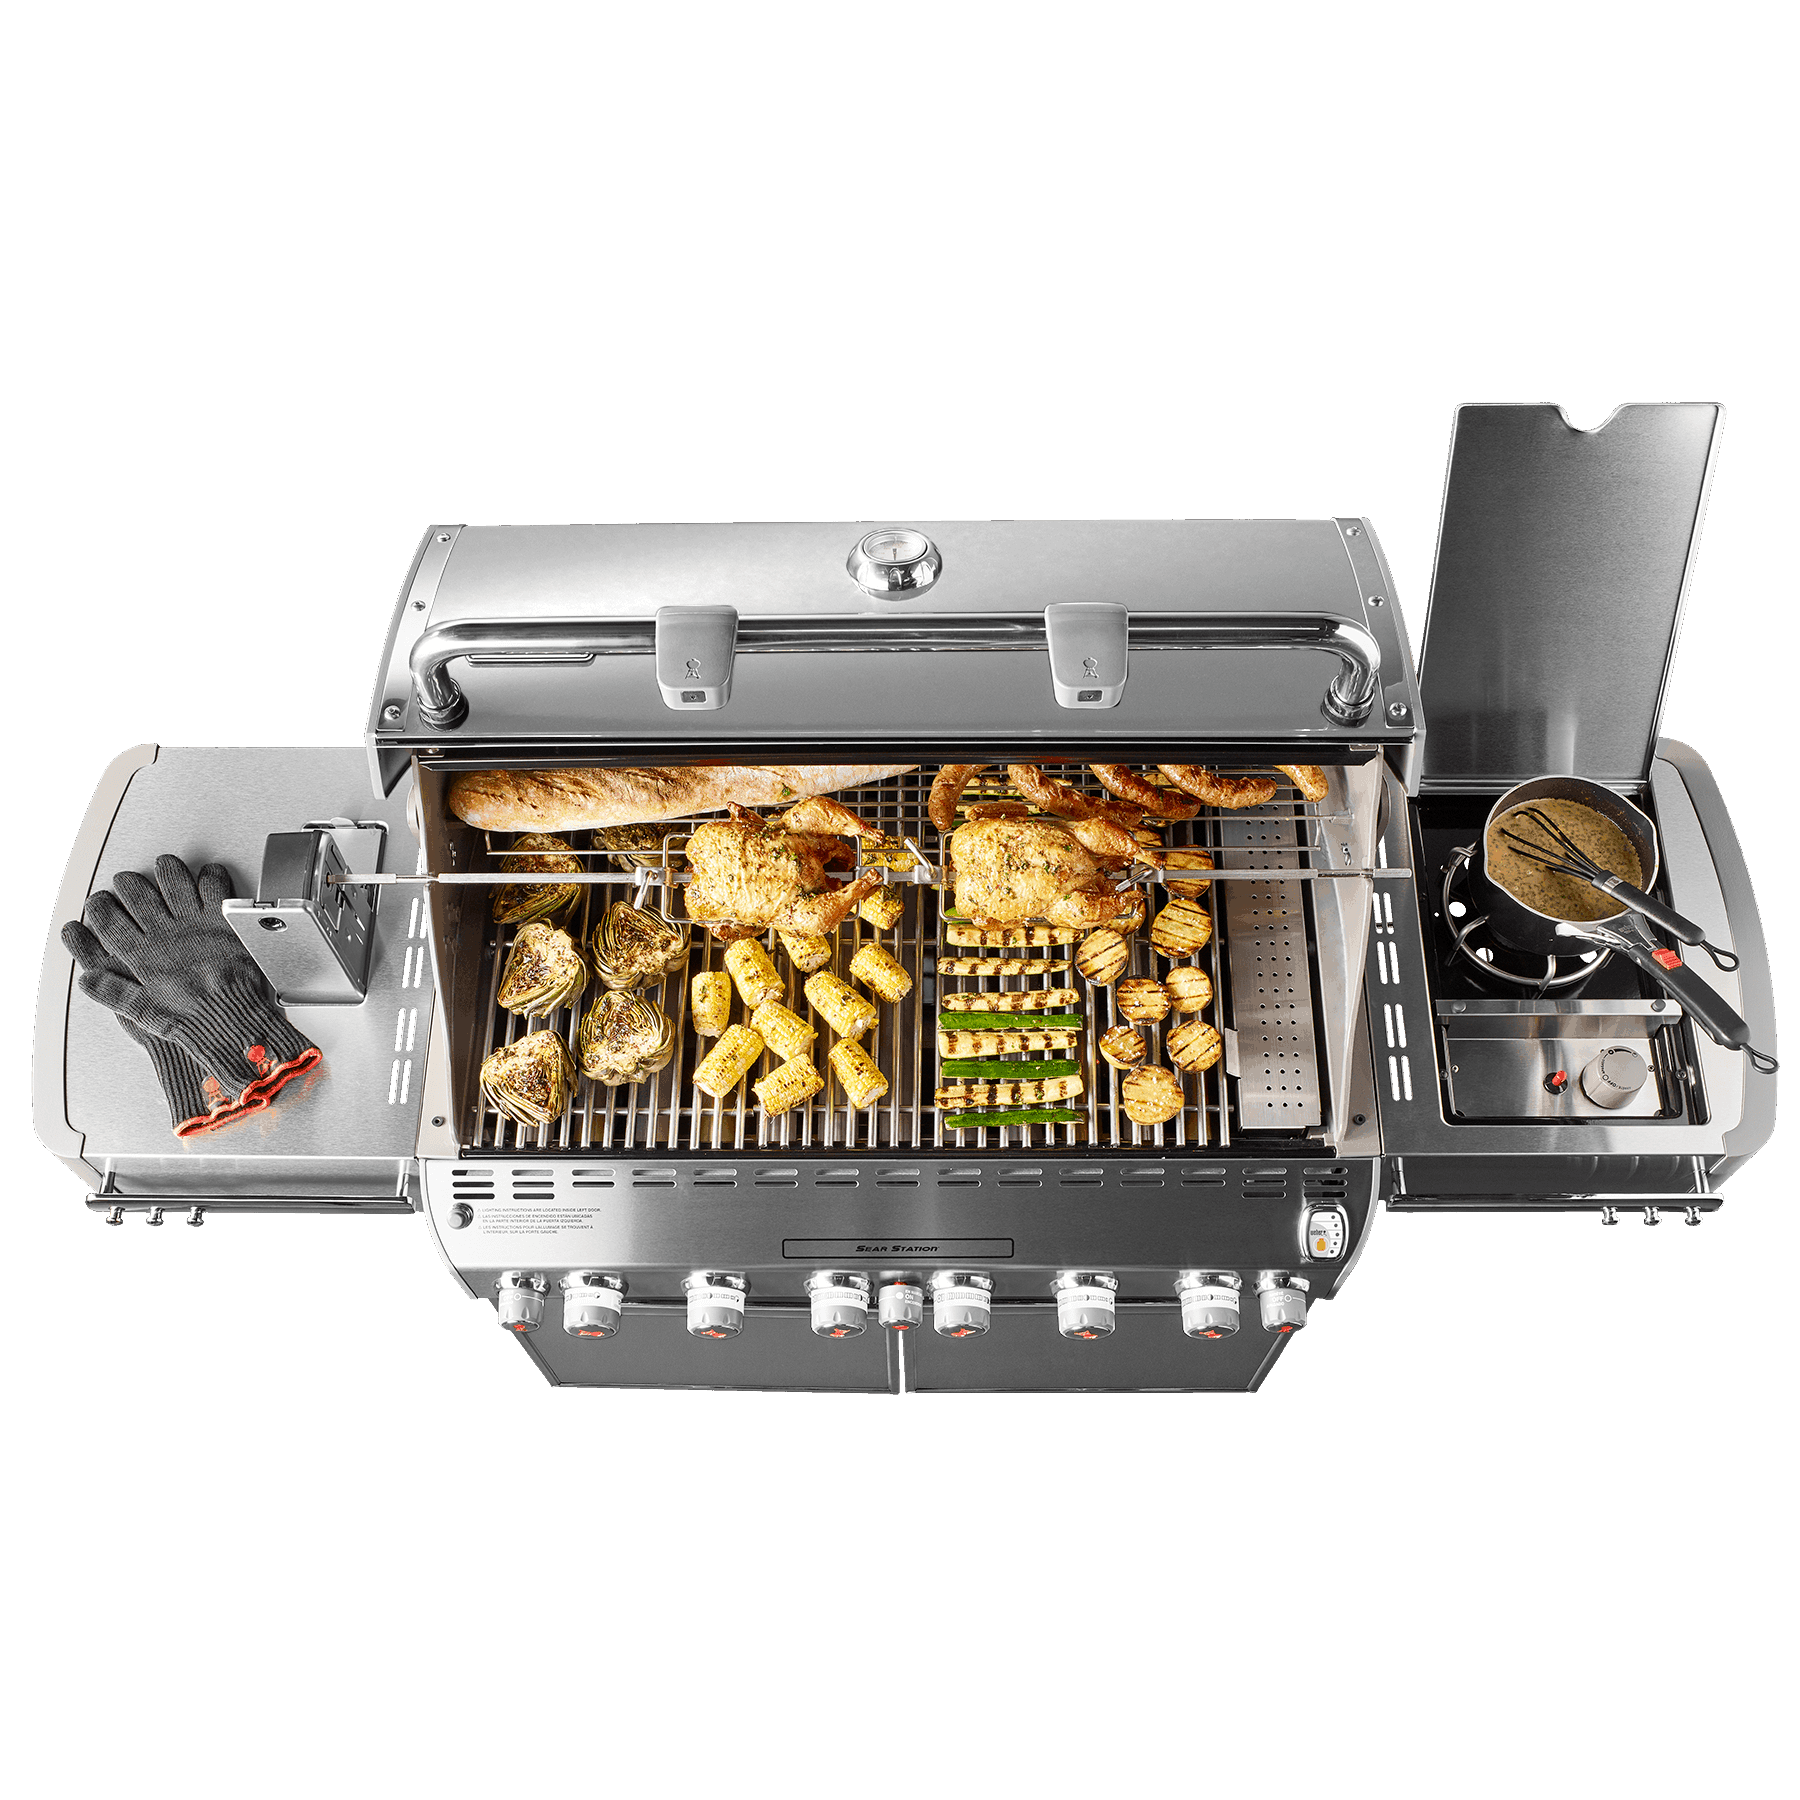 Summit® S-670 GBS Gasolgrill